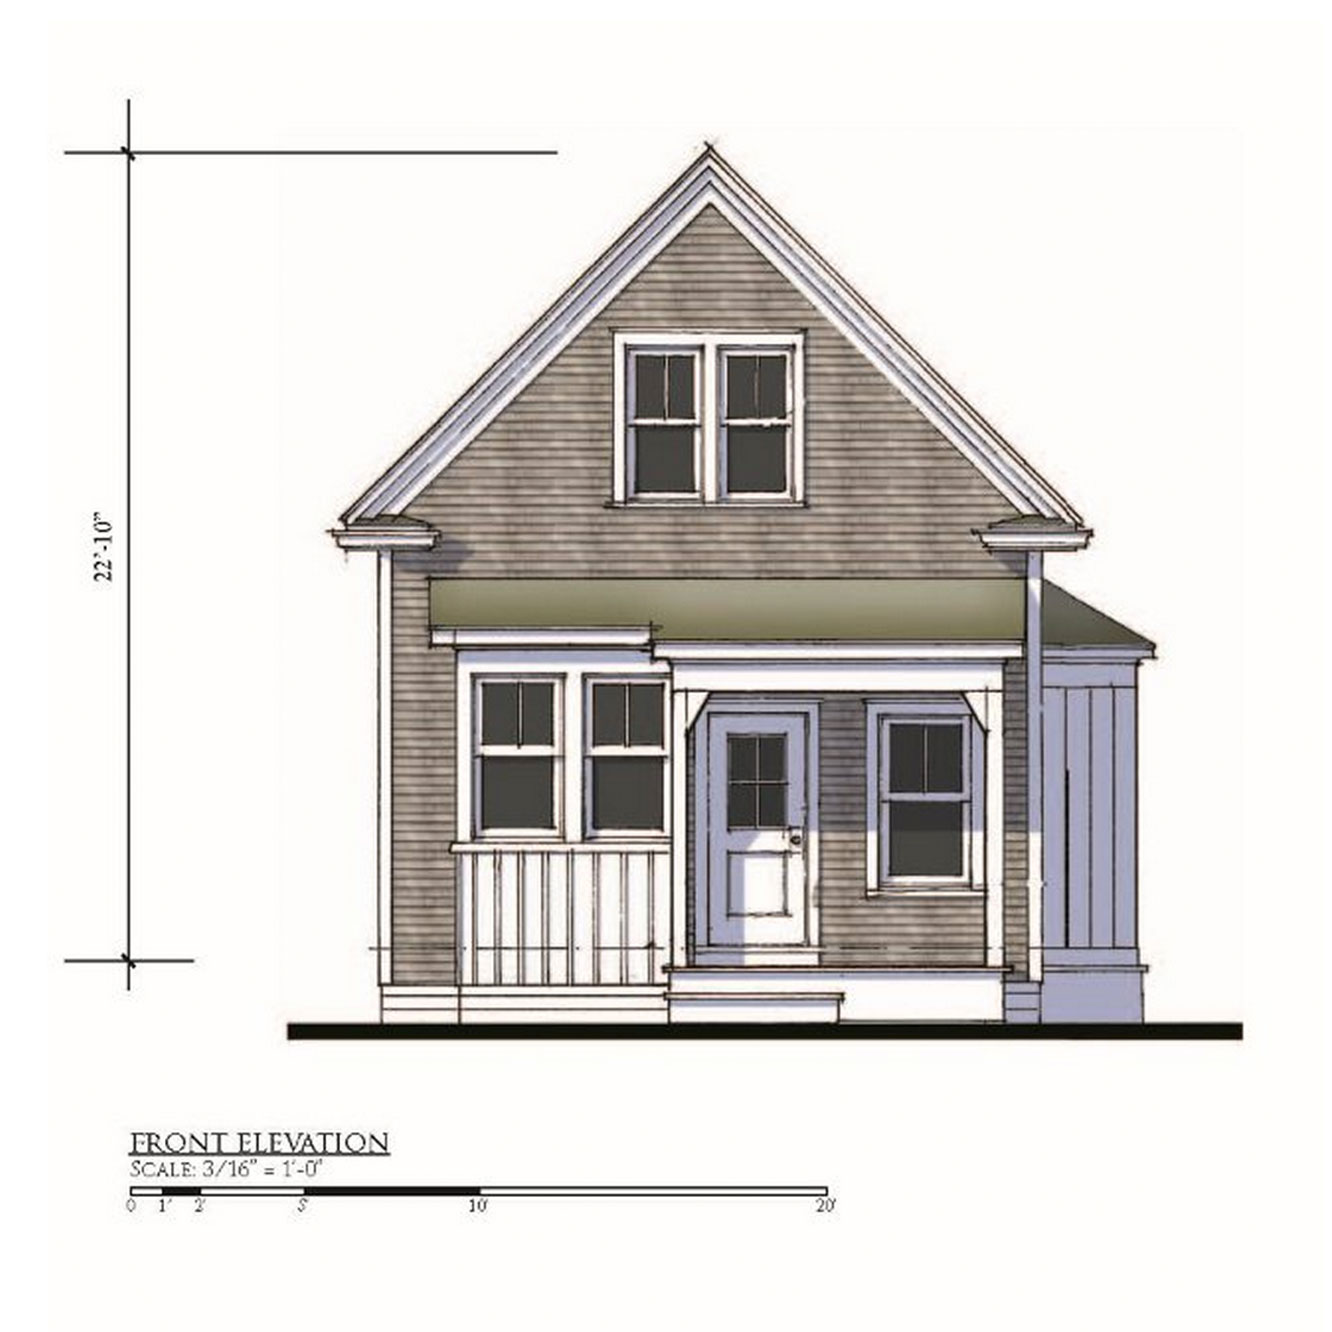 Howes 2BR Elevation View